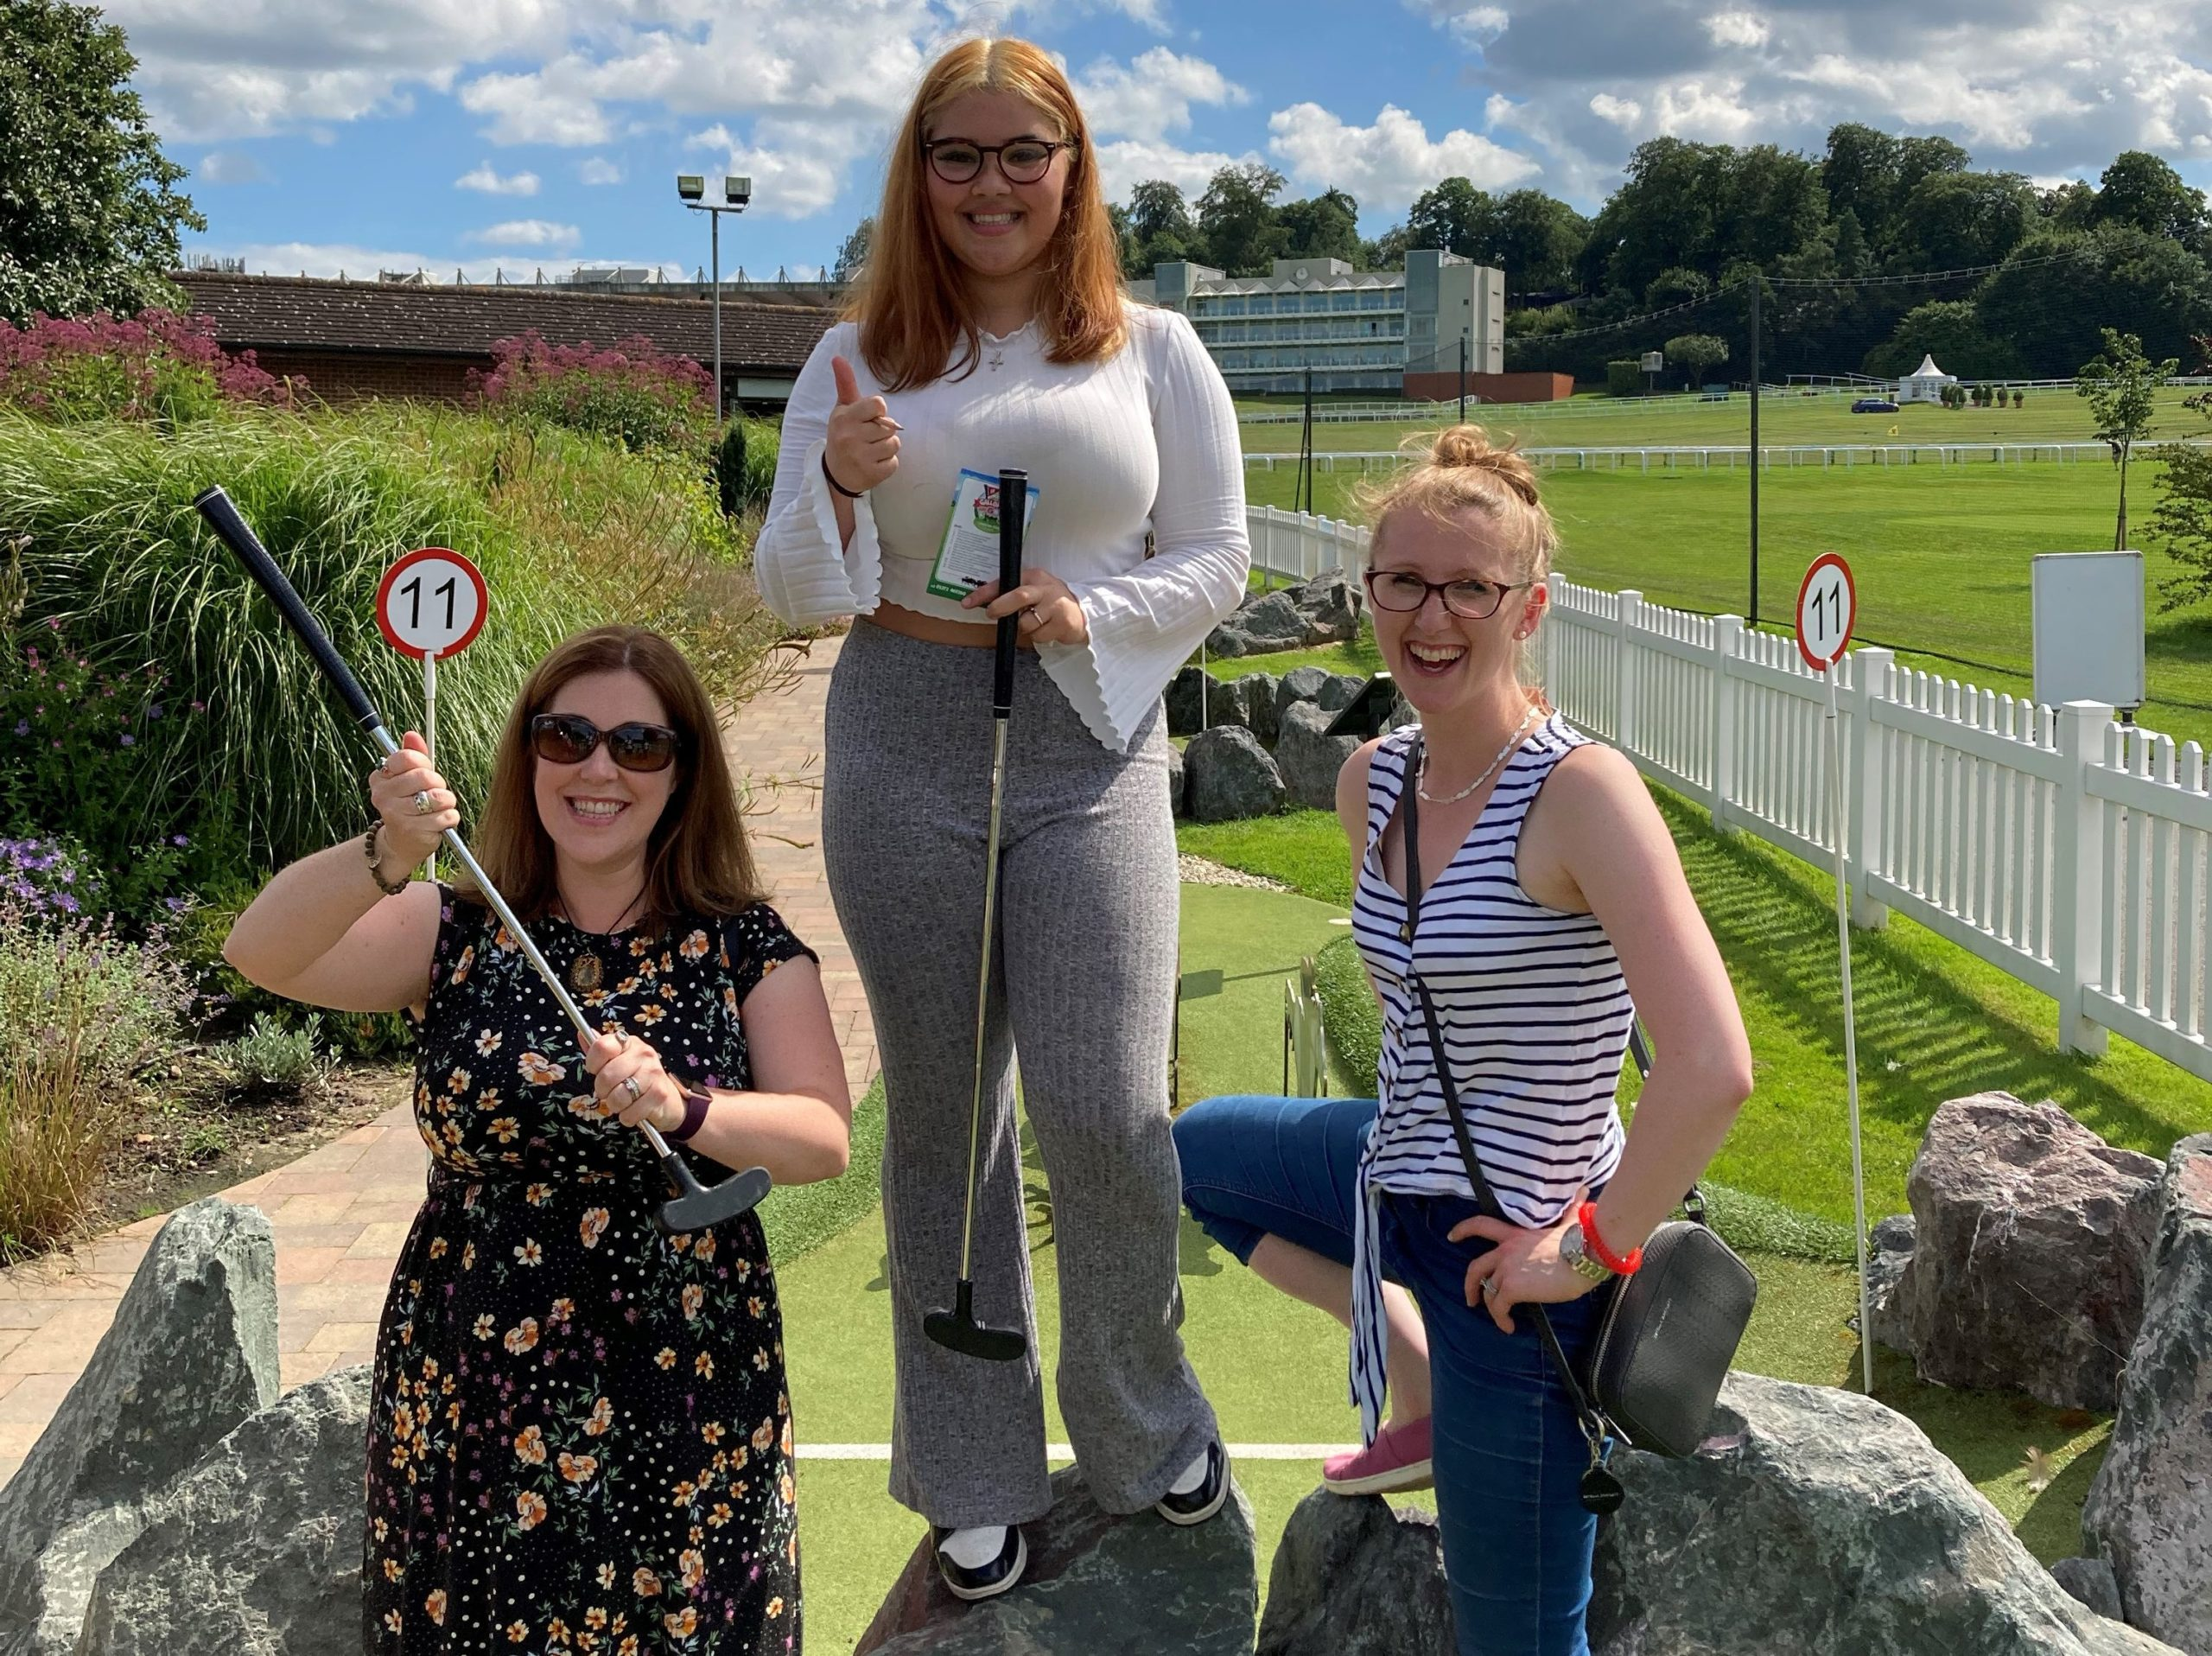 (From Left to Right) Lisa, Kayleigh and Emily from Happity (Baby and Toddler Classes site) stand as mini golf victors!